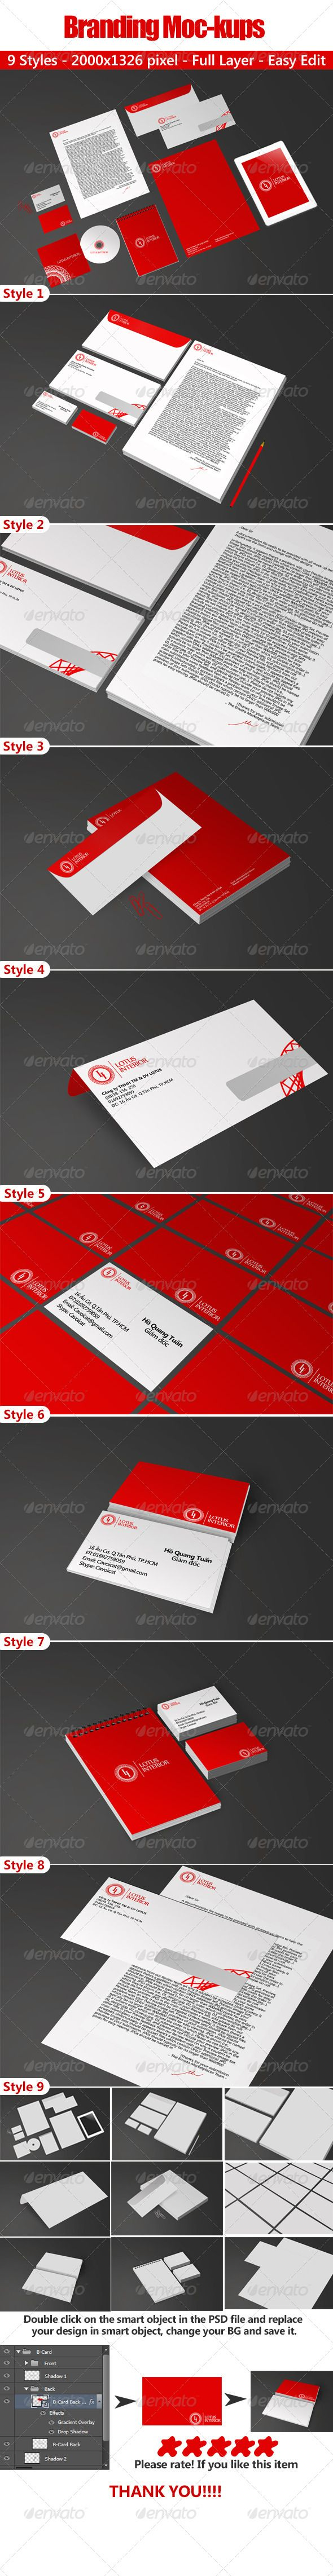 Branding Mockups  #GraphicRiver         Easy to edit via smart objects. Just open the psd file and then replace all of the objects. Help file included.  	 Items Included : Letterhead A4 Envelope 22×12cm Business card 5.5X9cm CD cover 13.5X13.5cm CD 11.6X11.6cm ipad mini Book 13×18cm Pen, Papers Clips     Created: 15May13 GraphicsFilesIncluded: PhotoshopPSD HighResolution: Yes Layered: Yes MinimumAdobeCSVersion: CS PixelDimensions: 2000x1326 Tags: Cavoicat #Headletter #book #brand…